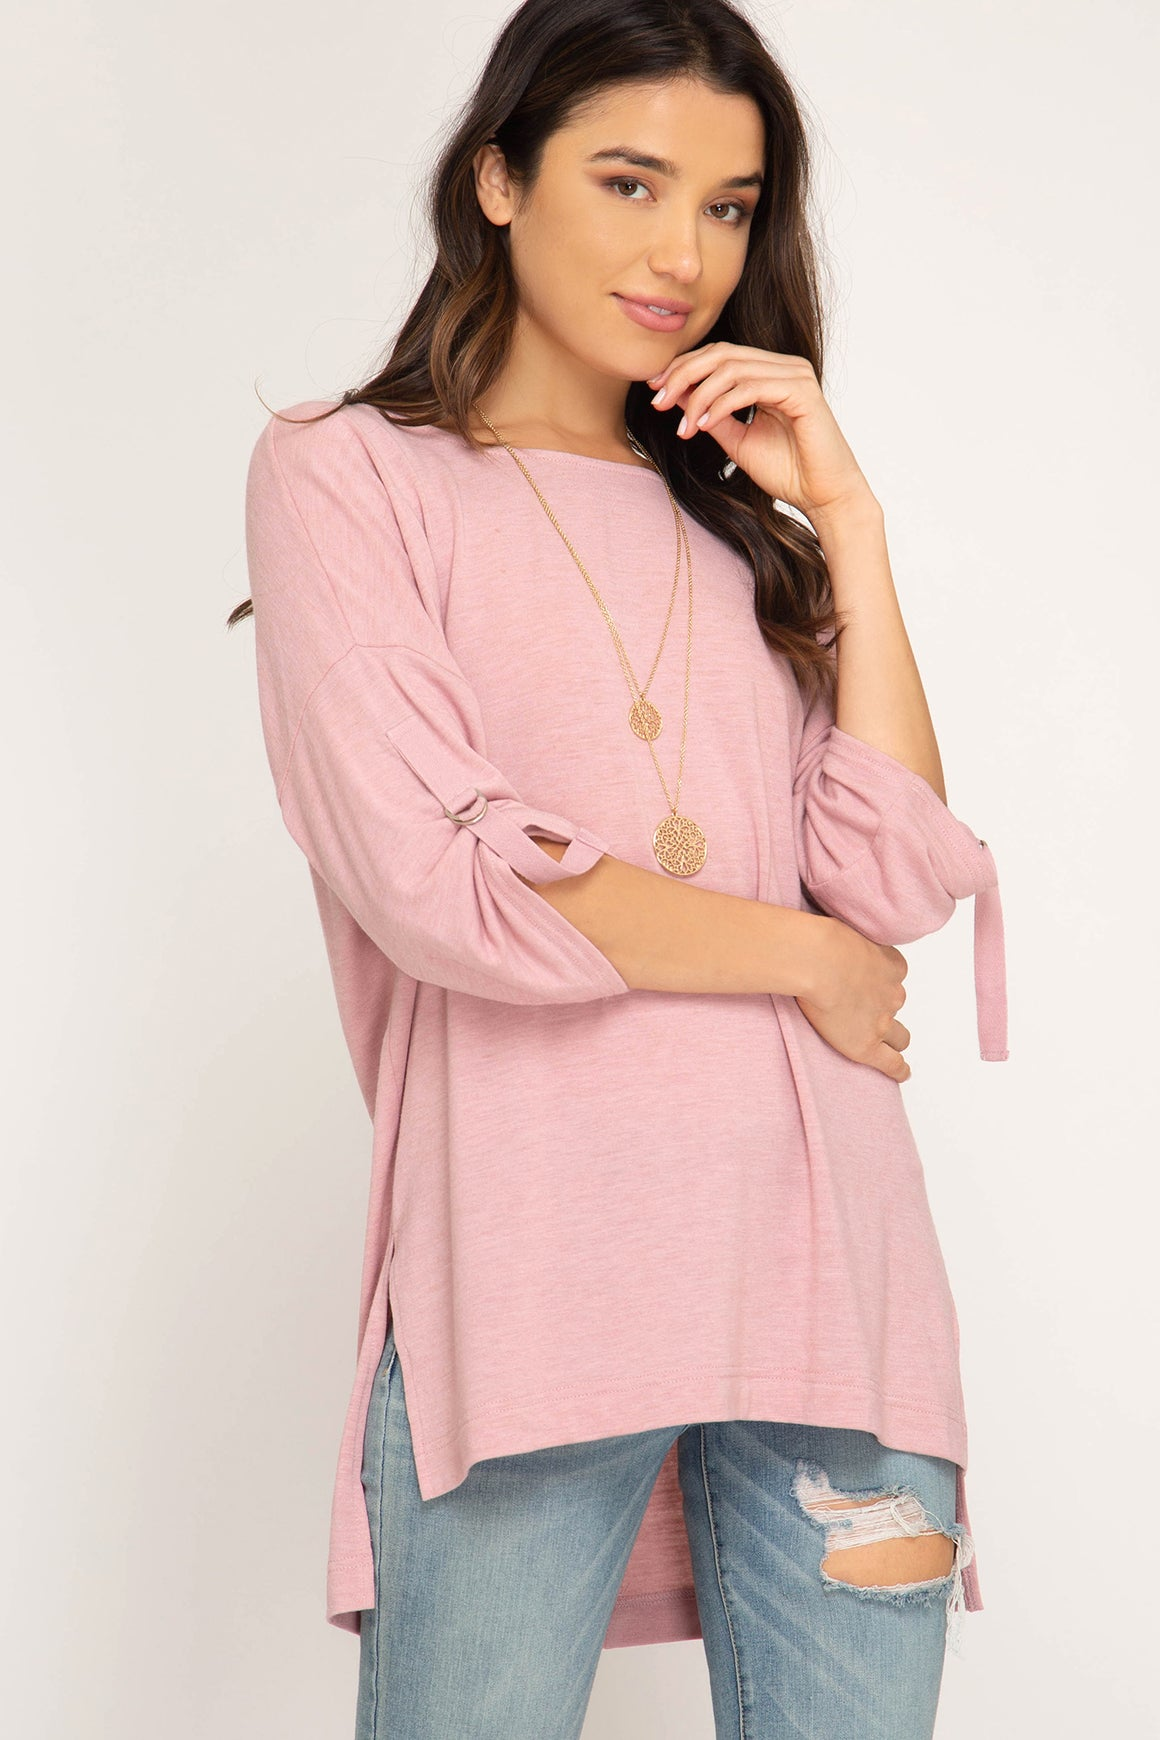 Half Roll Up Sleeve Hi Low Knit Top!